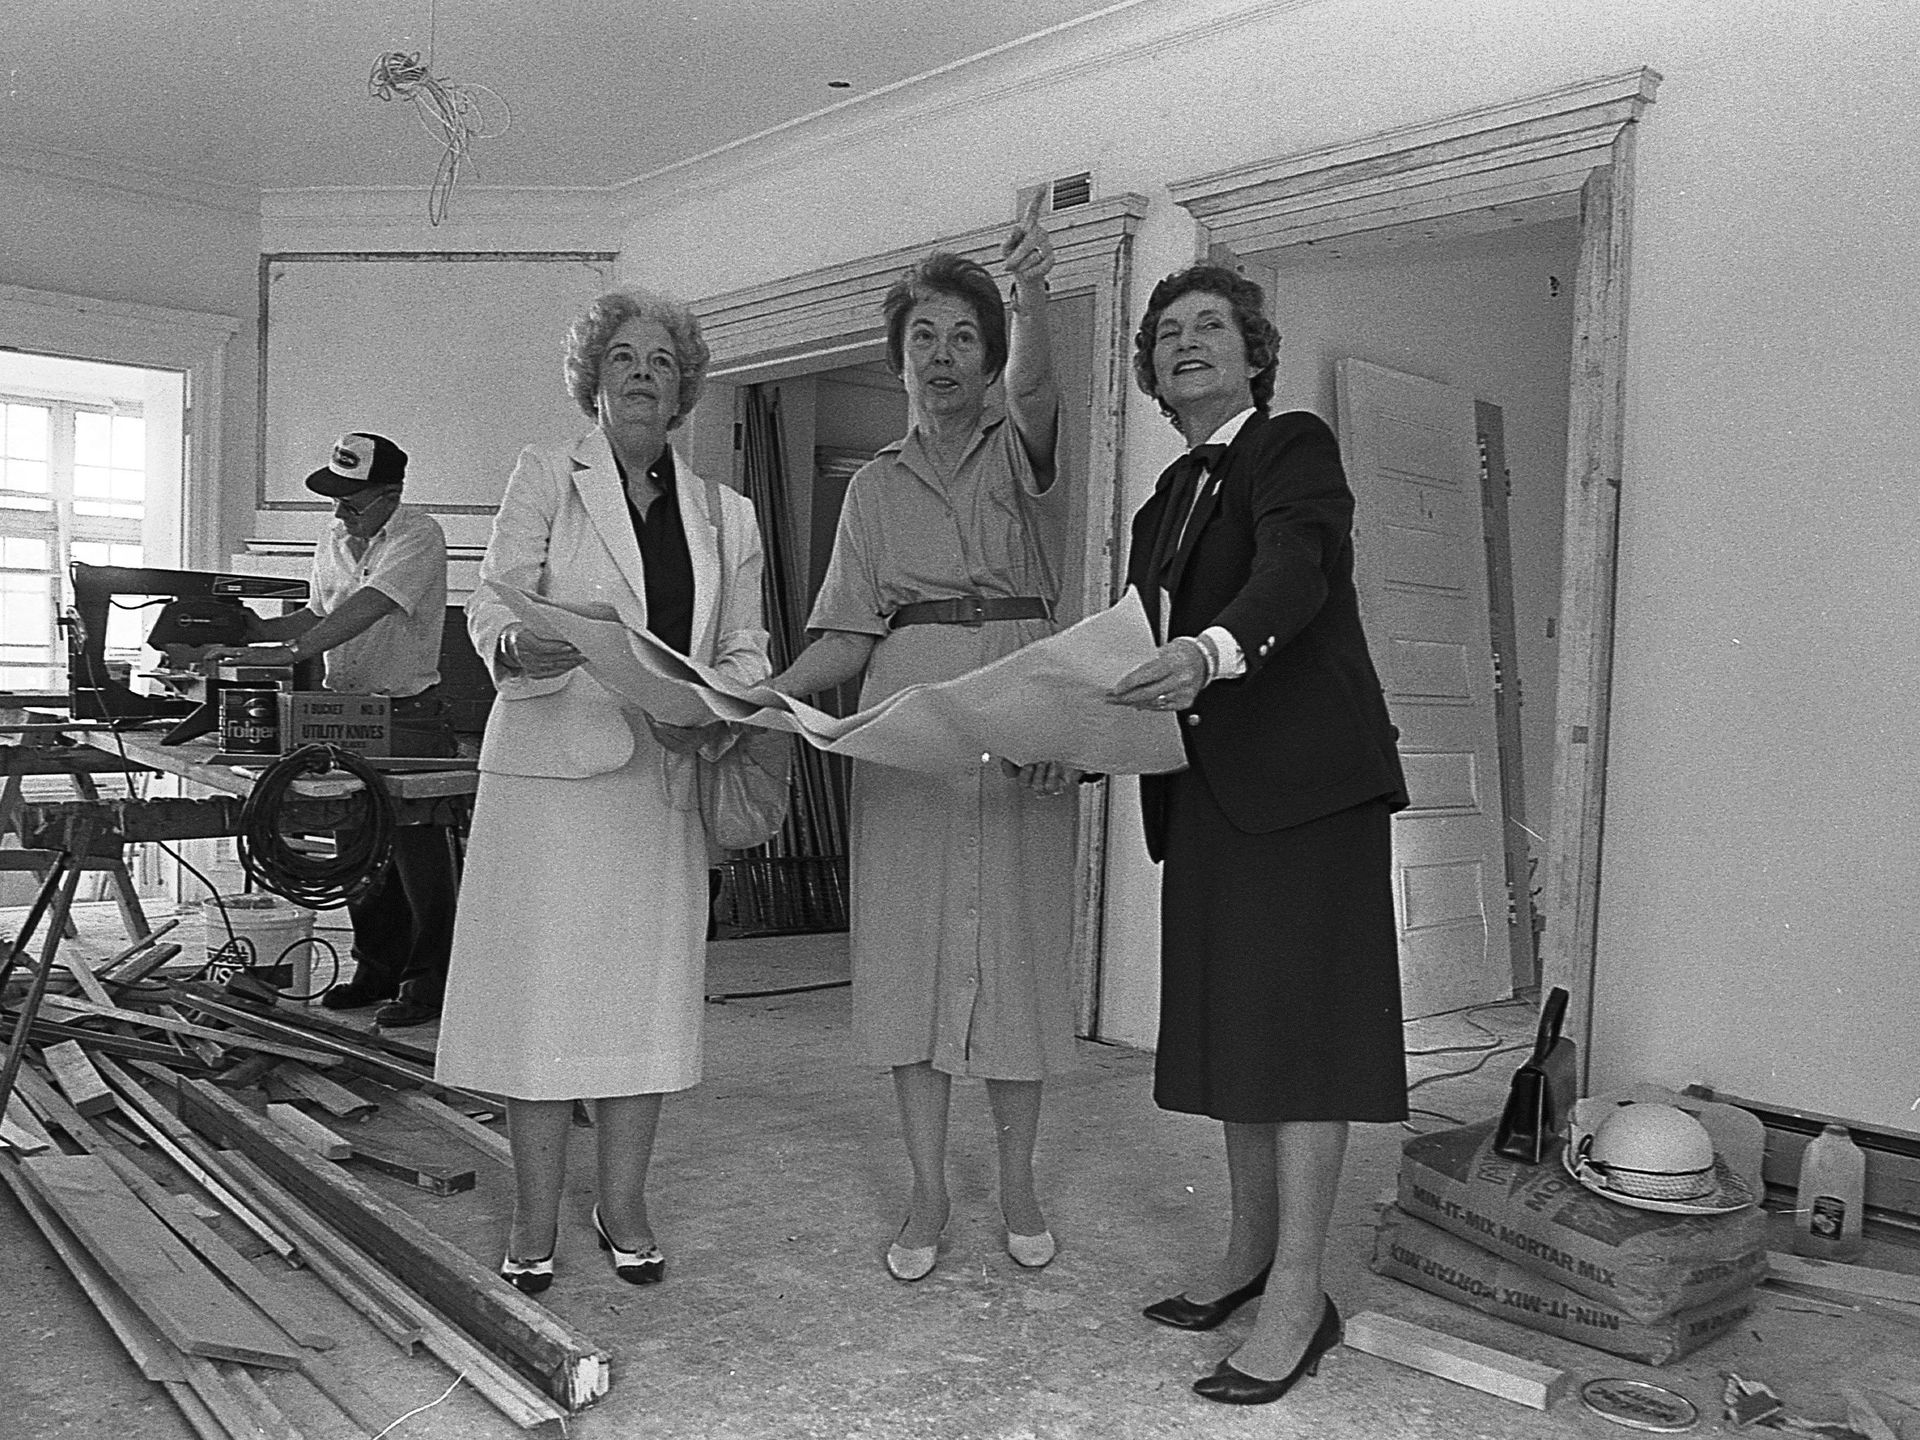 During renovation of the Cooley-Haze home in the early 1980s